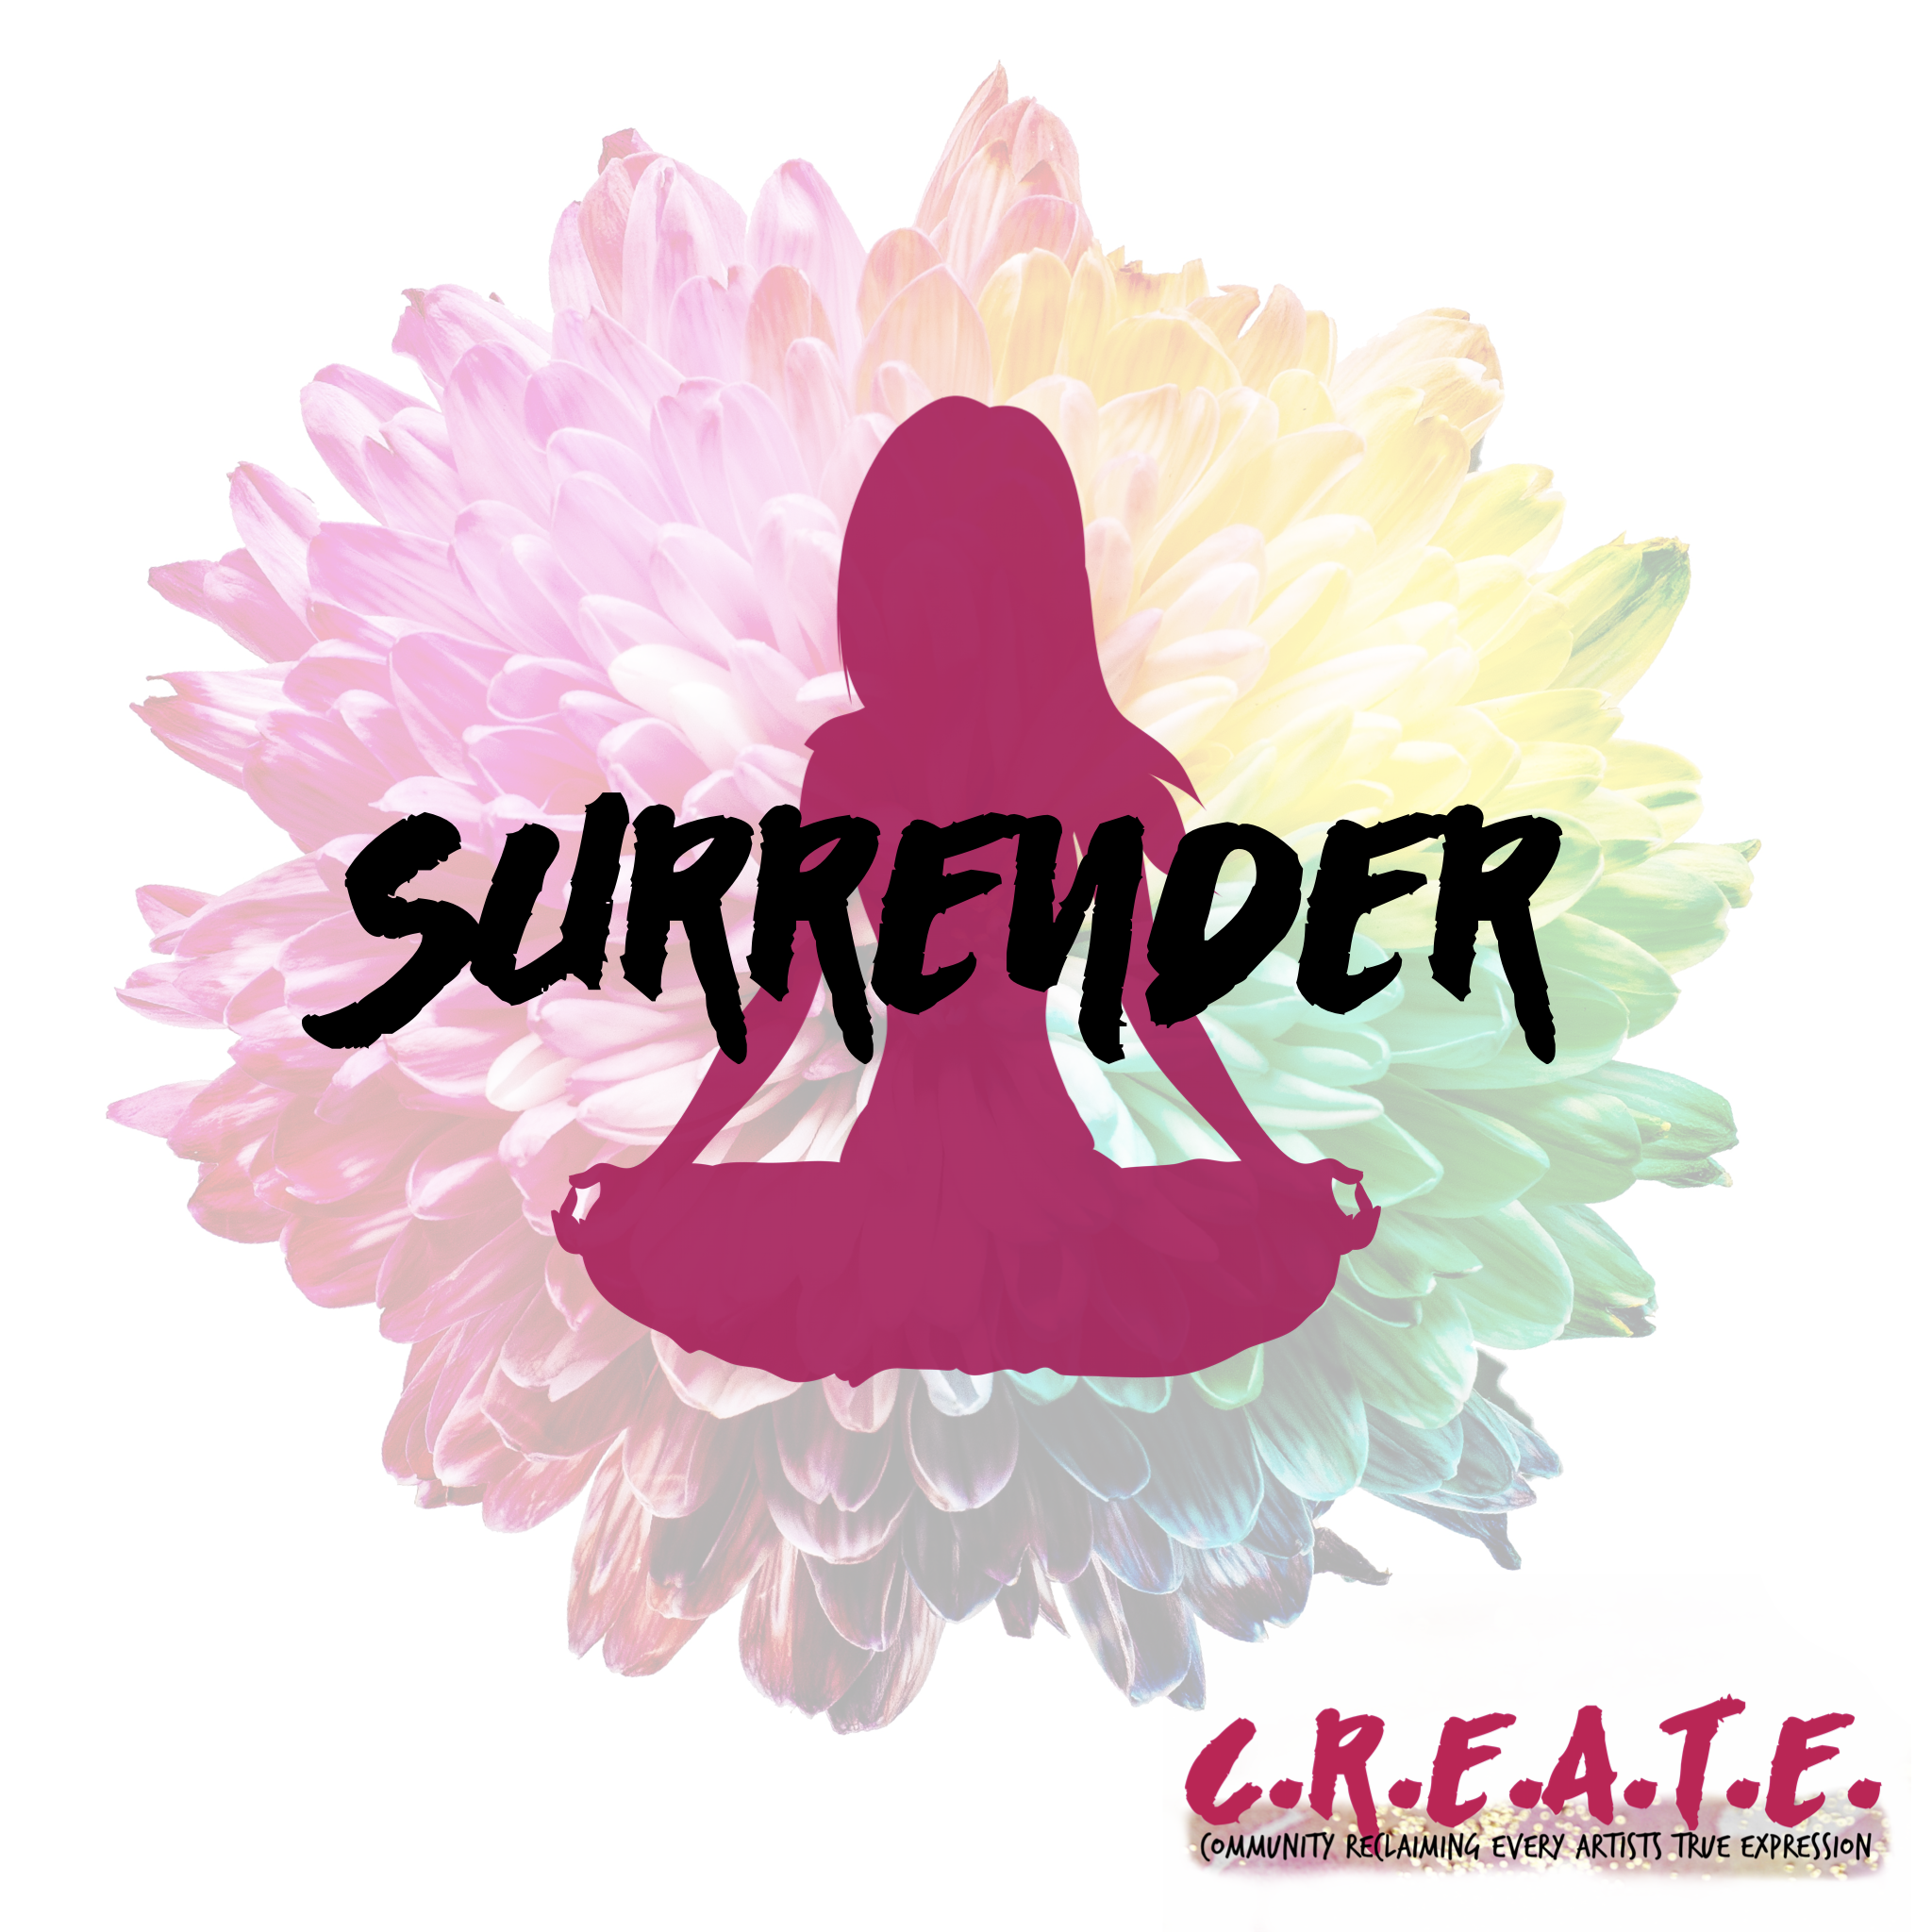 Surrender - $1.99 - Click Image To Purchase!